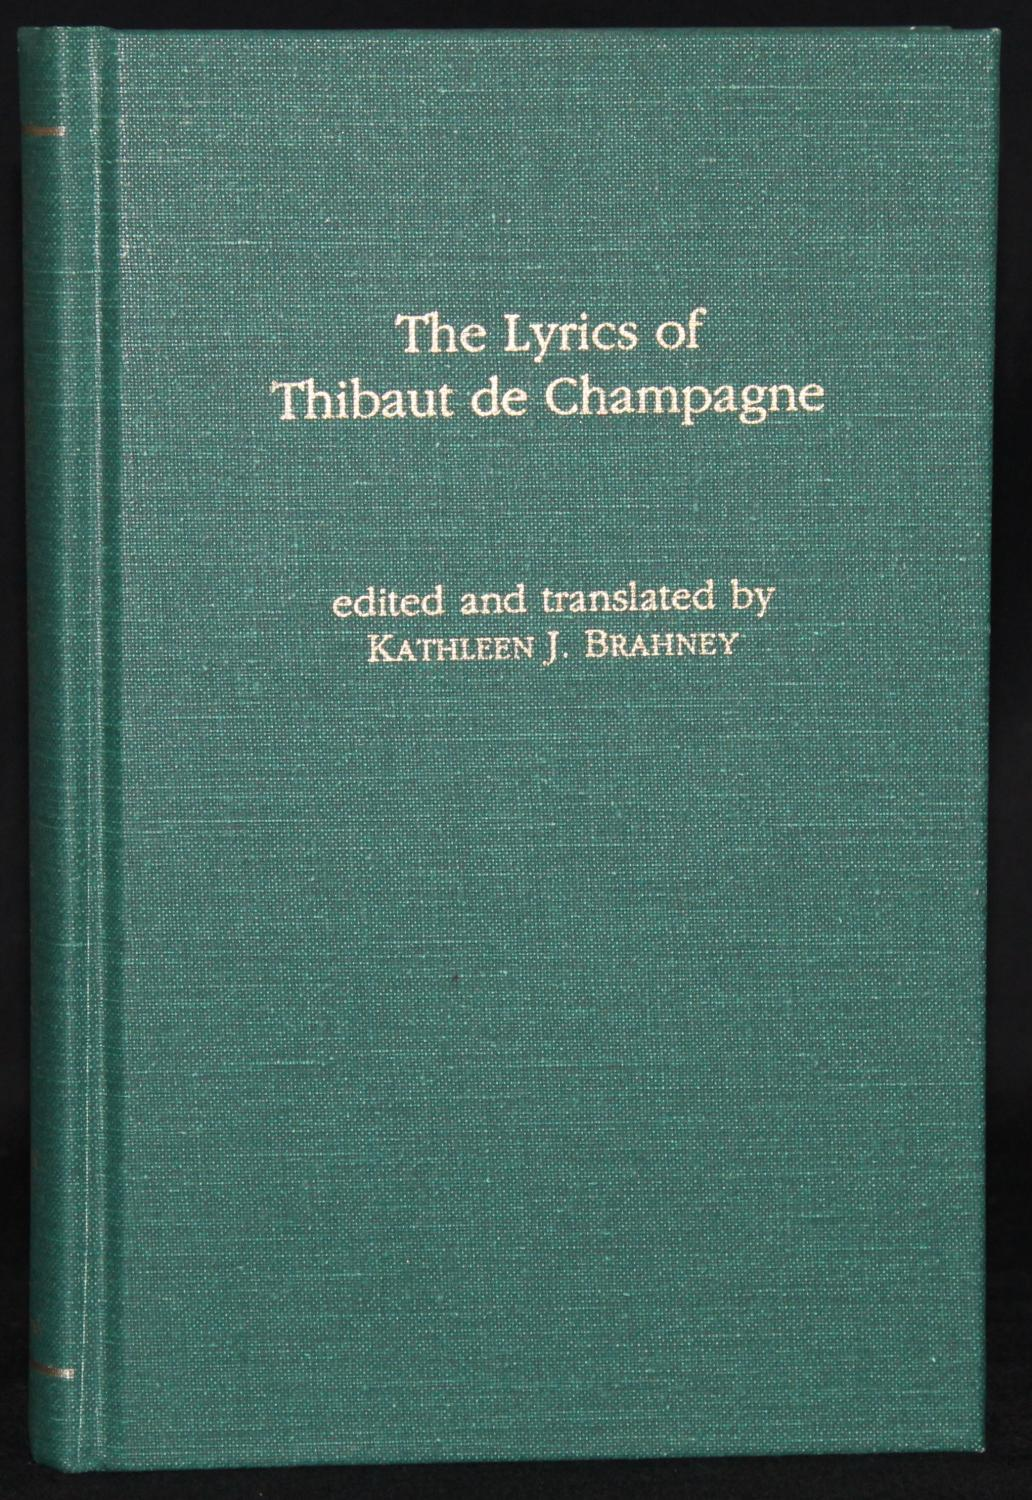 THE LYRICS OF THIBAUT DE CHAMPAGNE (Garland Library of Medieval Literature): Thibaut de Champagne |...